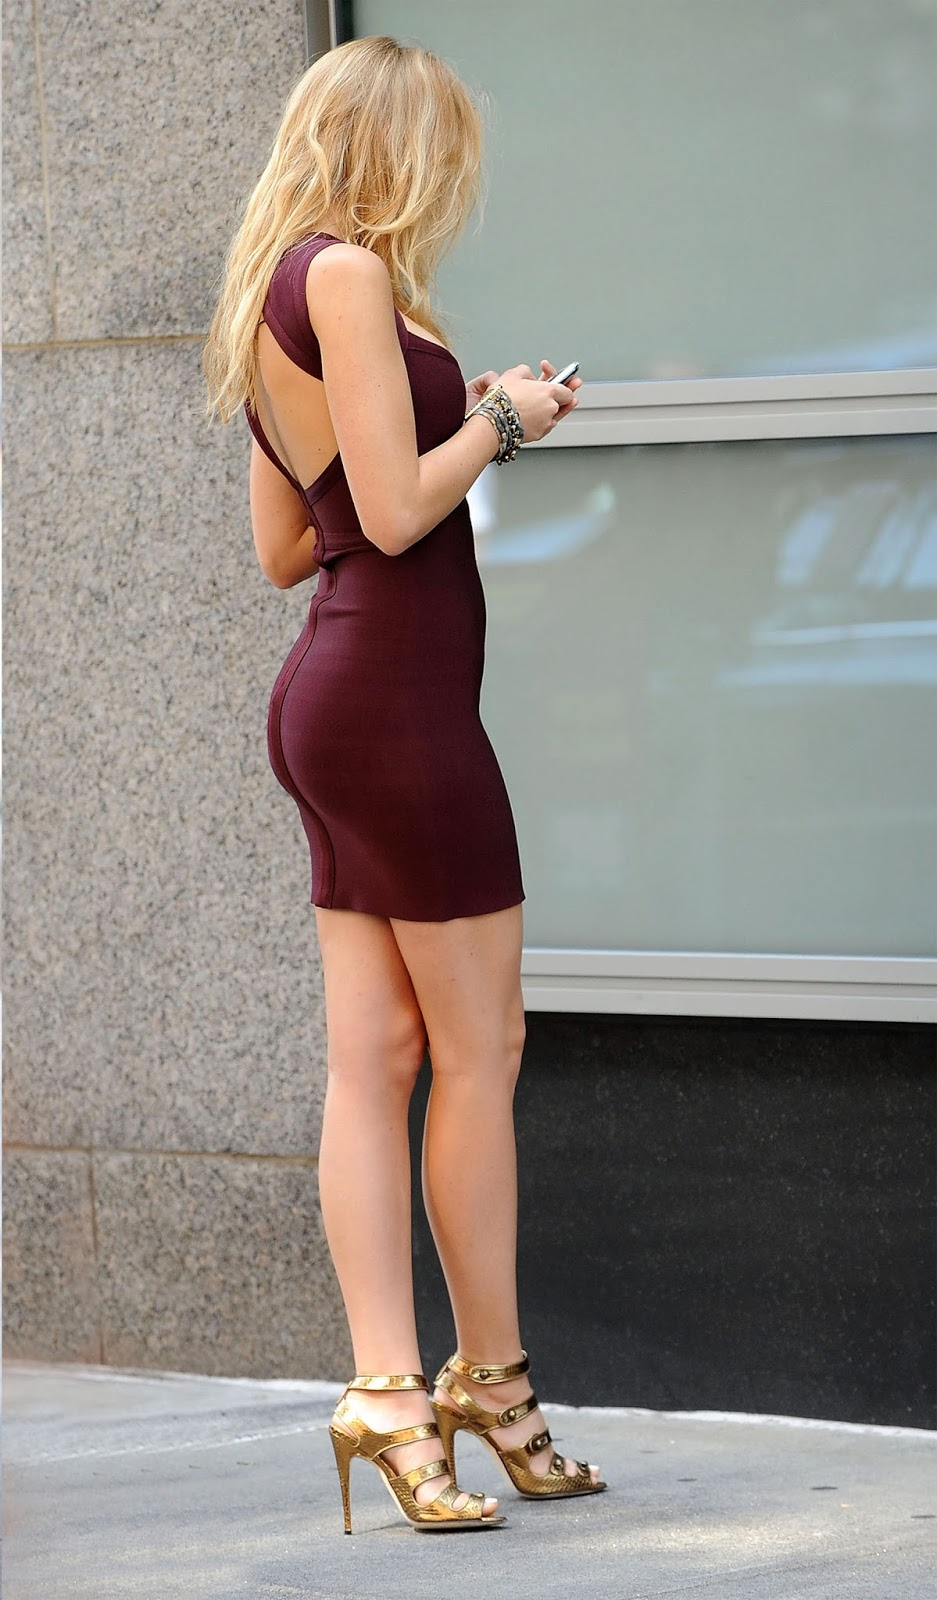 Blake Lively S Butt - Natural Tits